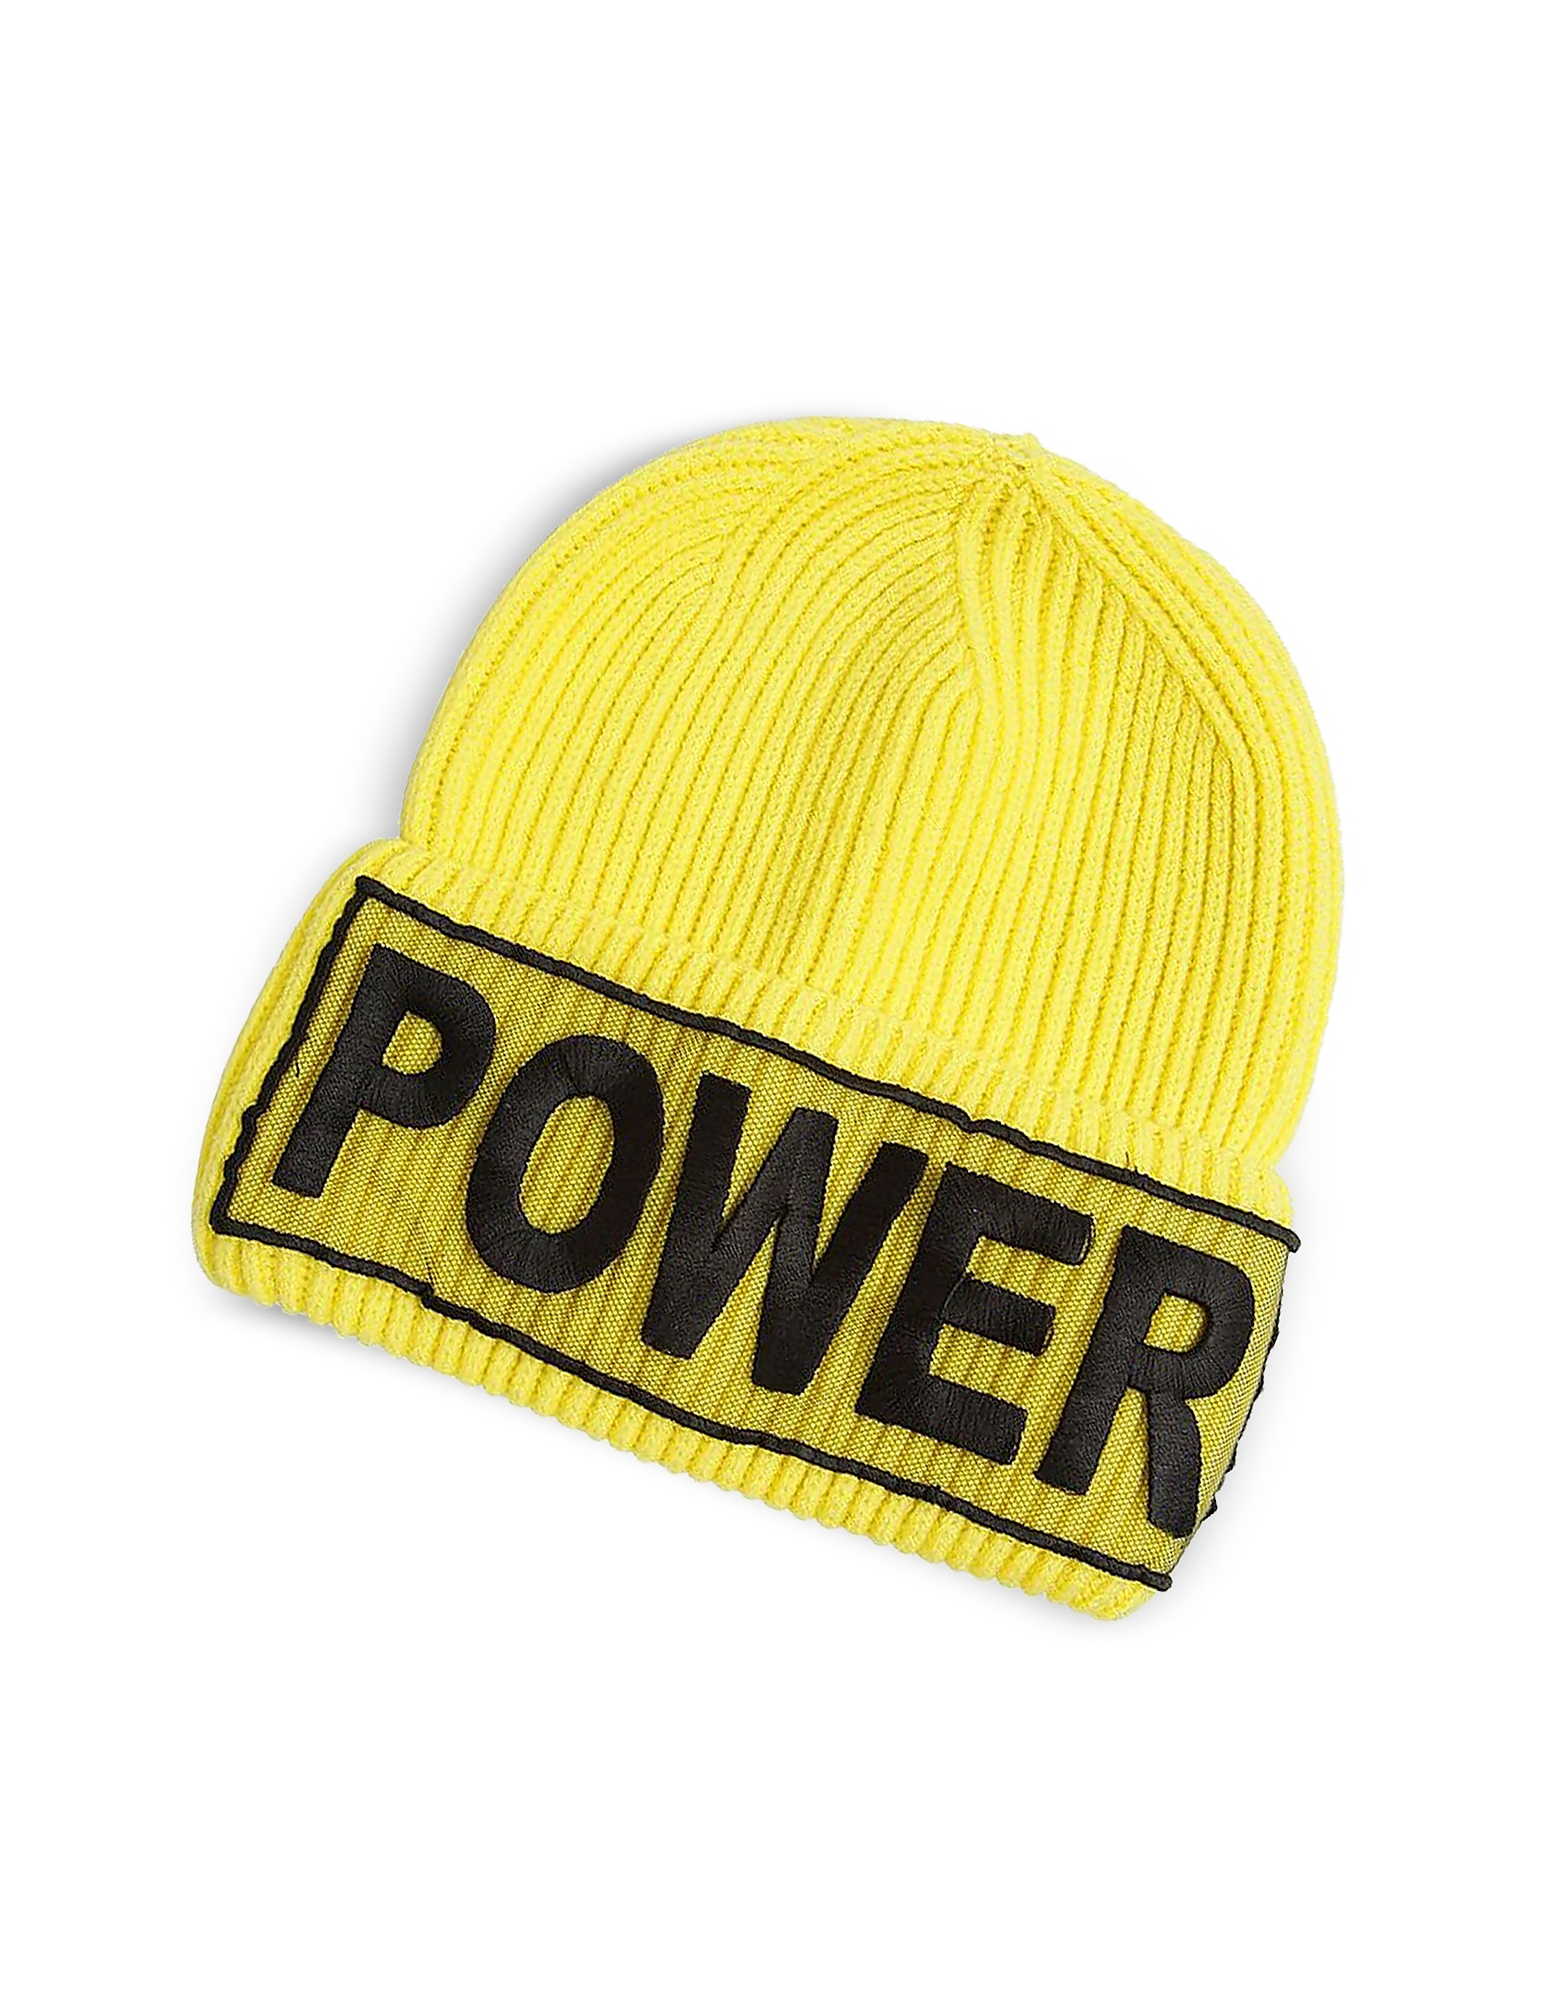 Versace Women's Hats, Power Manifesto Bright Yellow Wool Knit Hat